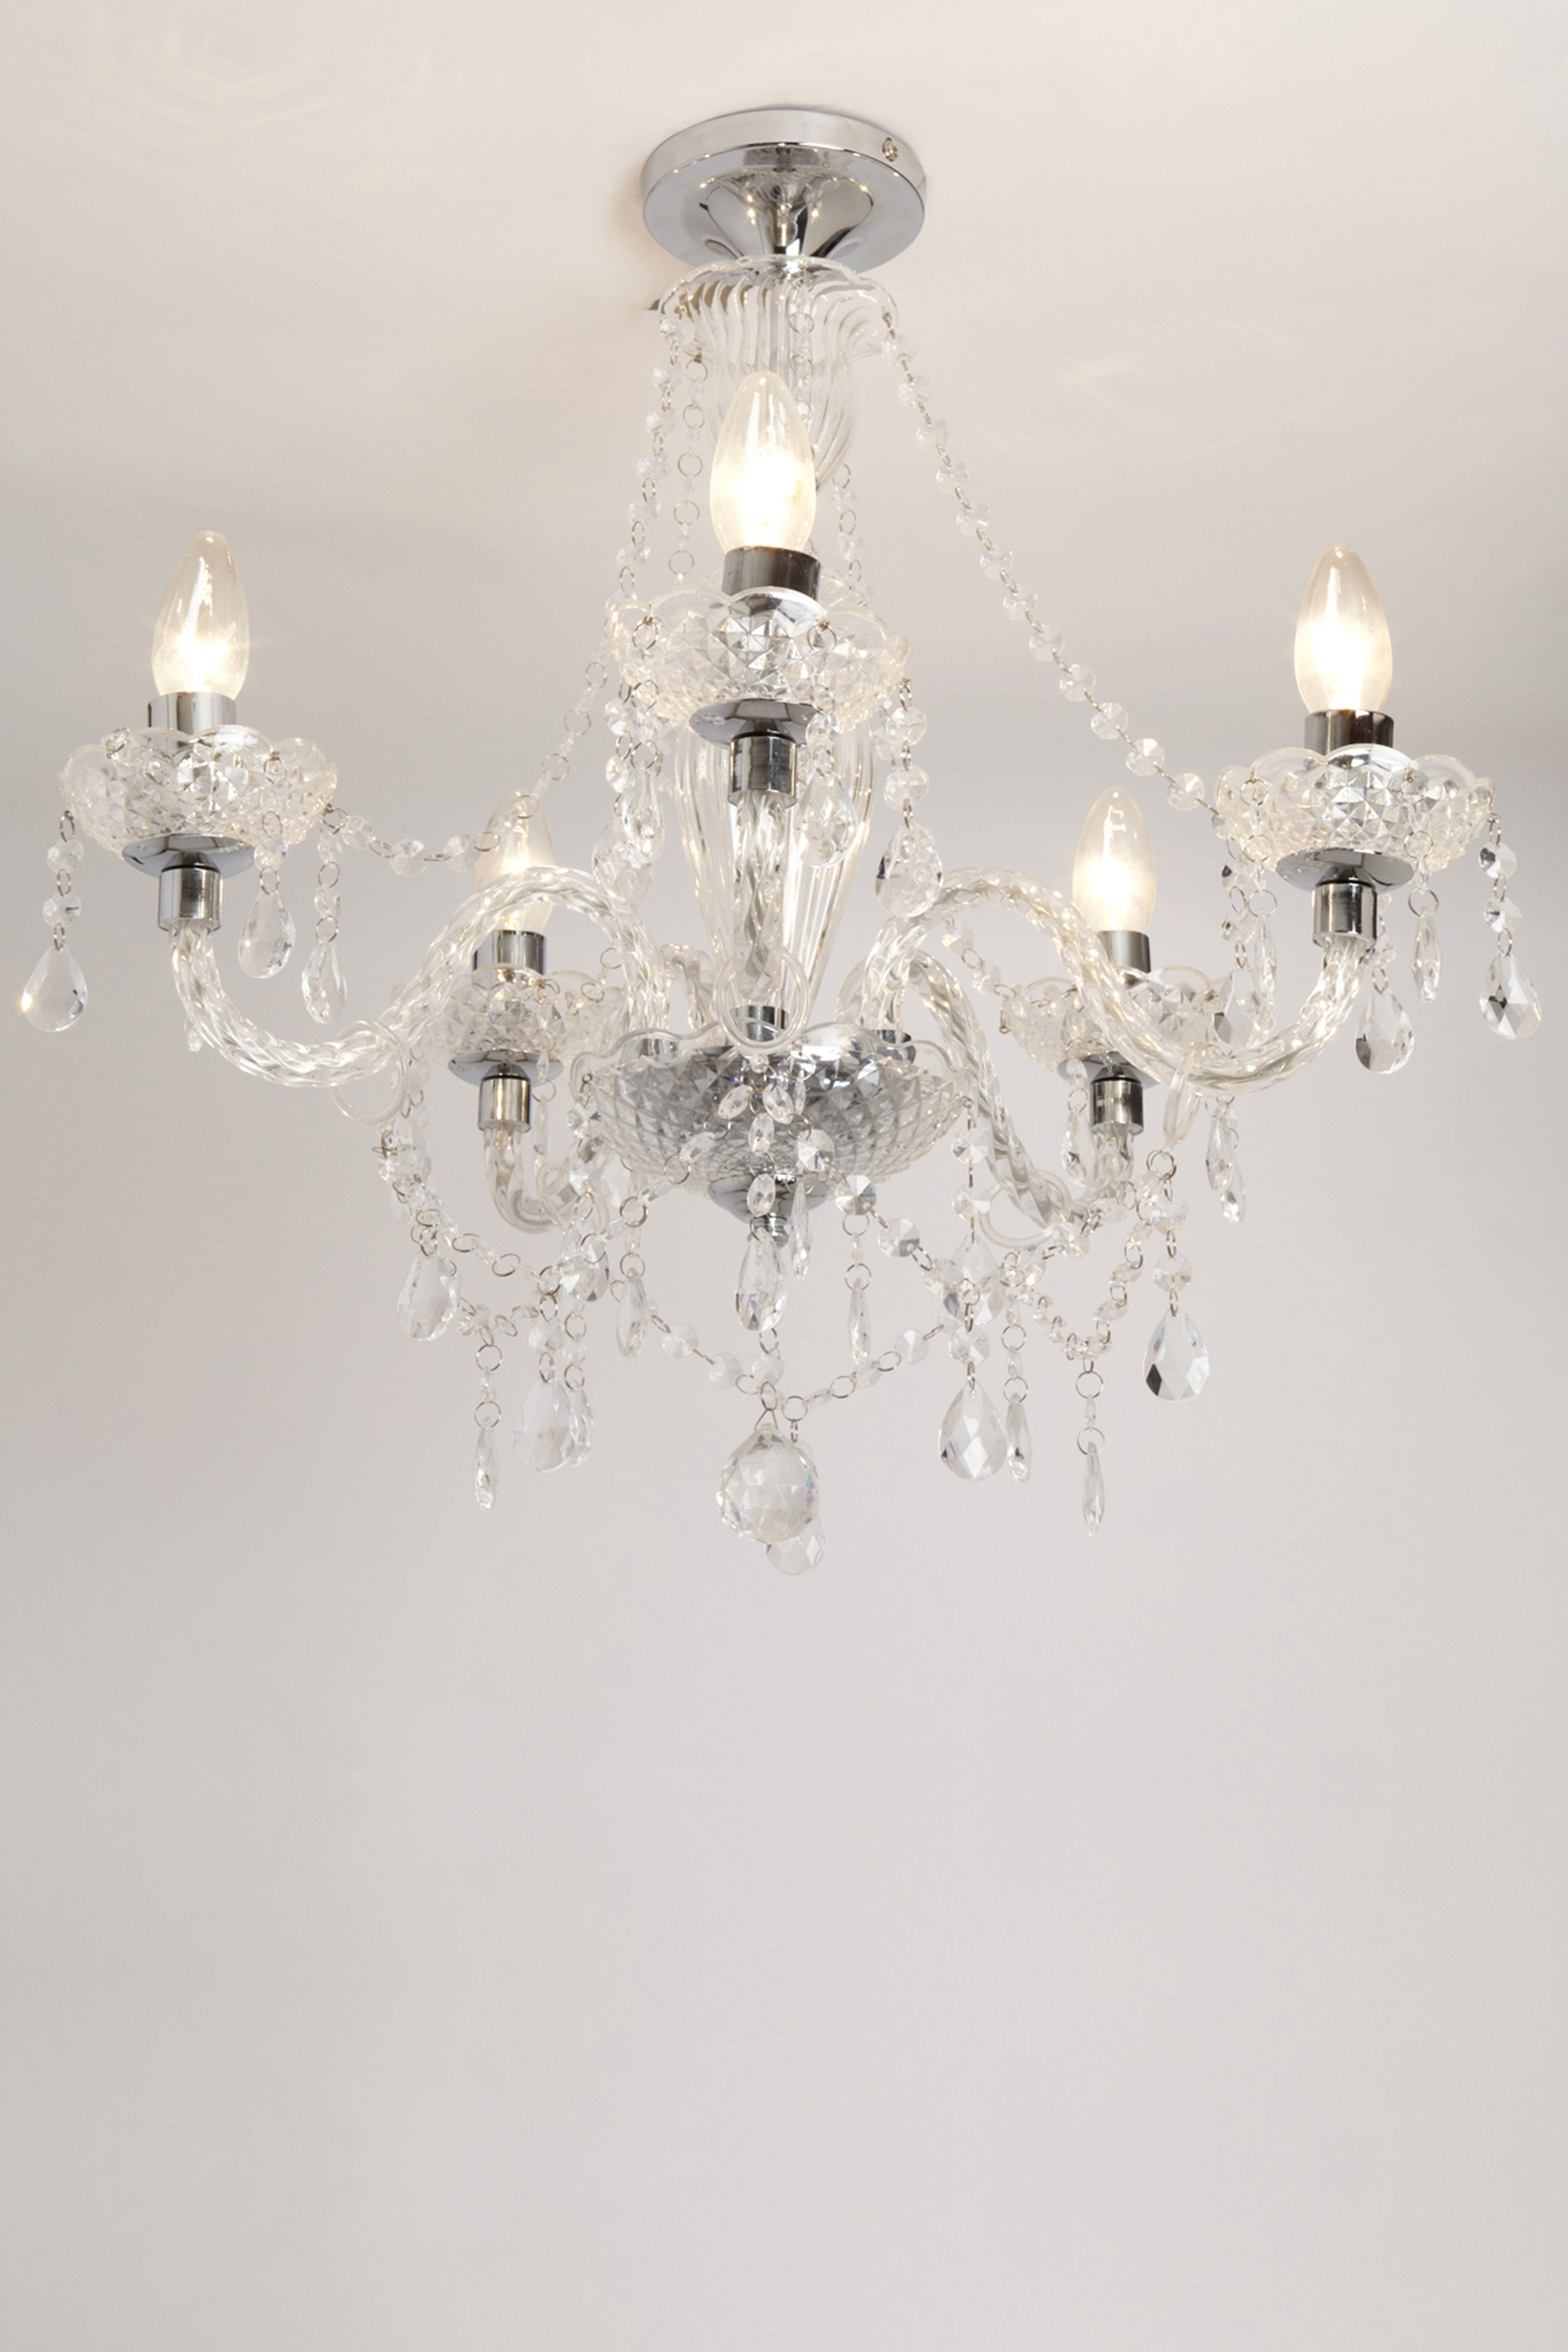 Flush Chandelier Throughout Most Recent Sapparia 5 Light Flush Chandelier Bhs, £60 (Was £120), Living (View 9 of 15)